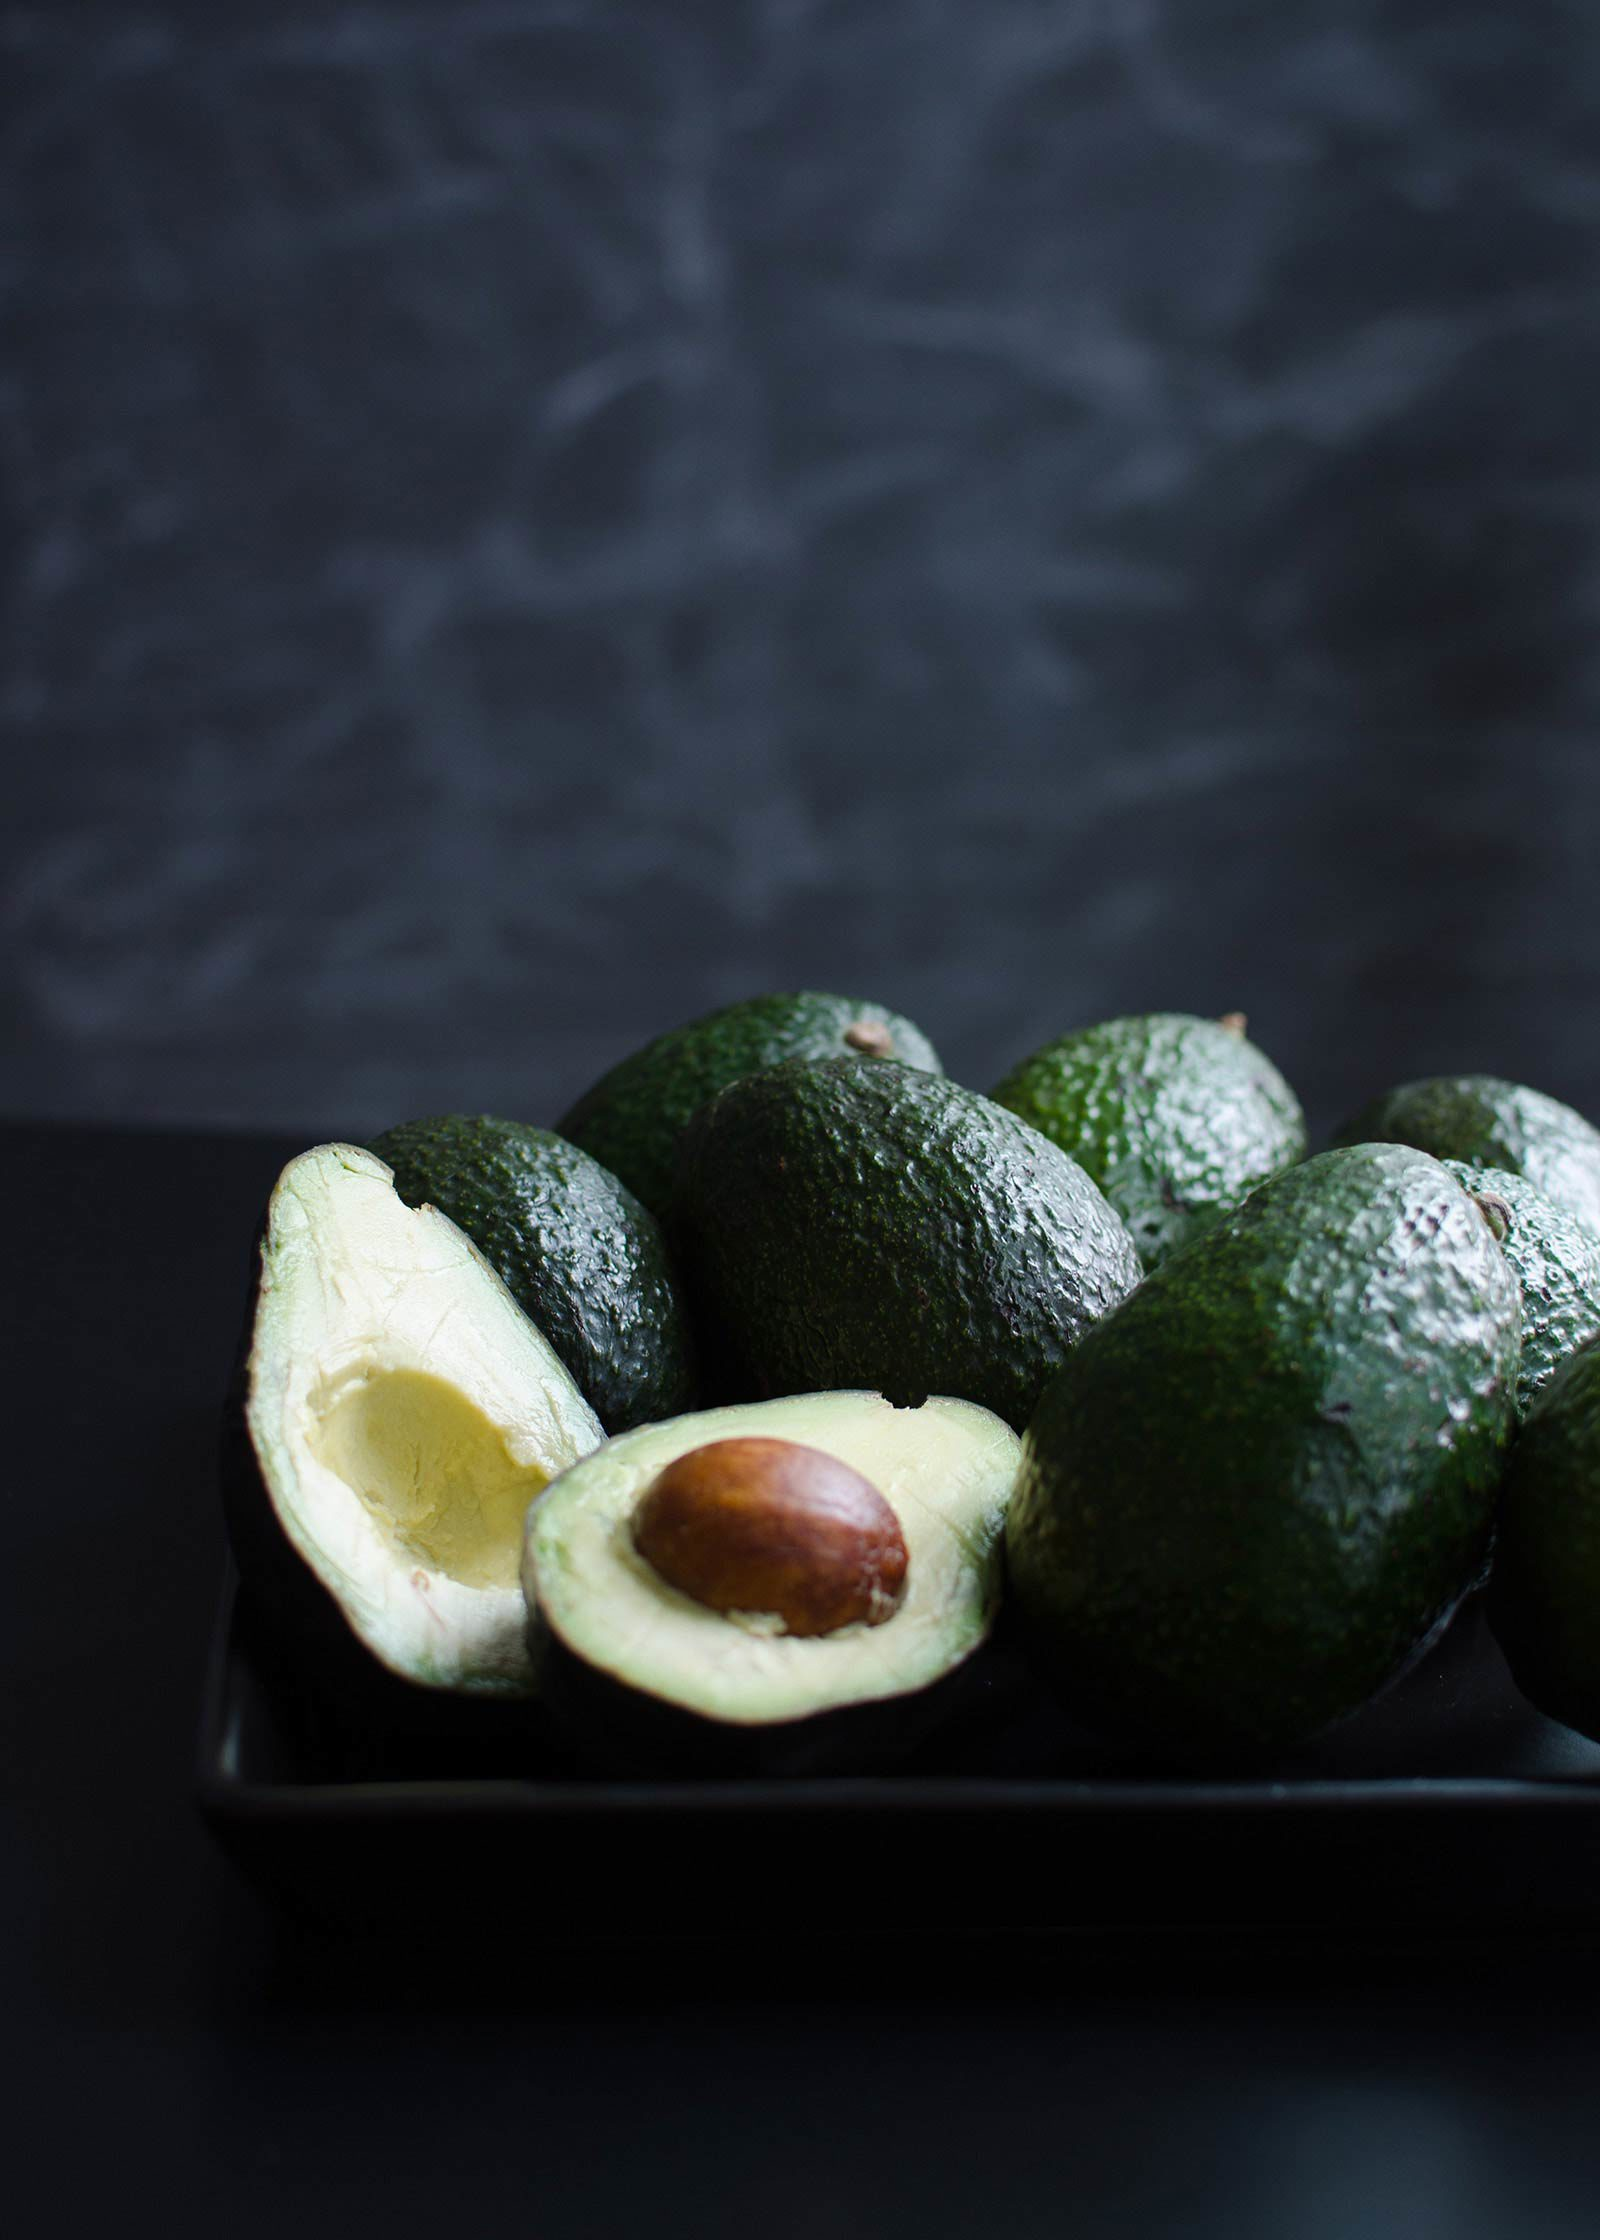 Array of avocados sitting on black plate, one cut in half.